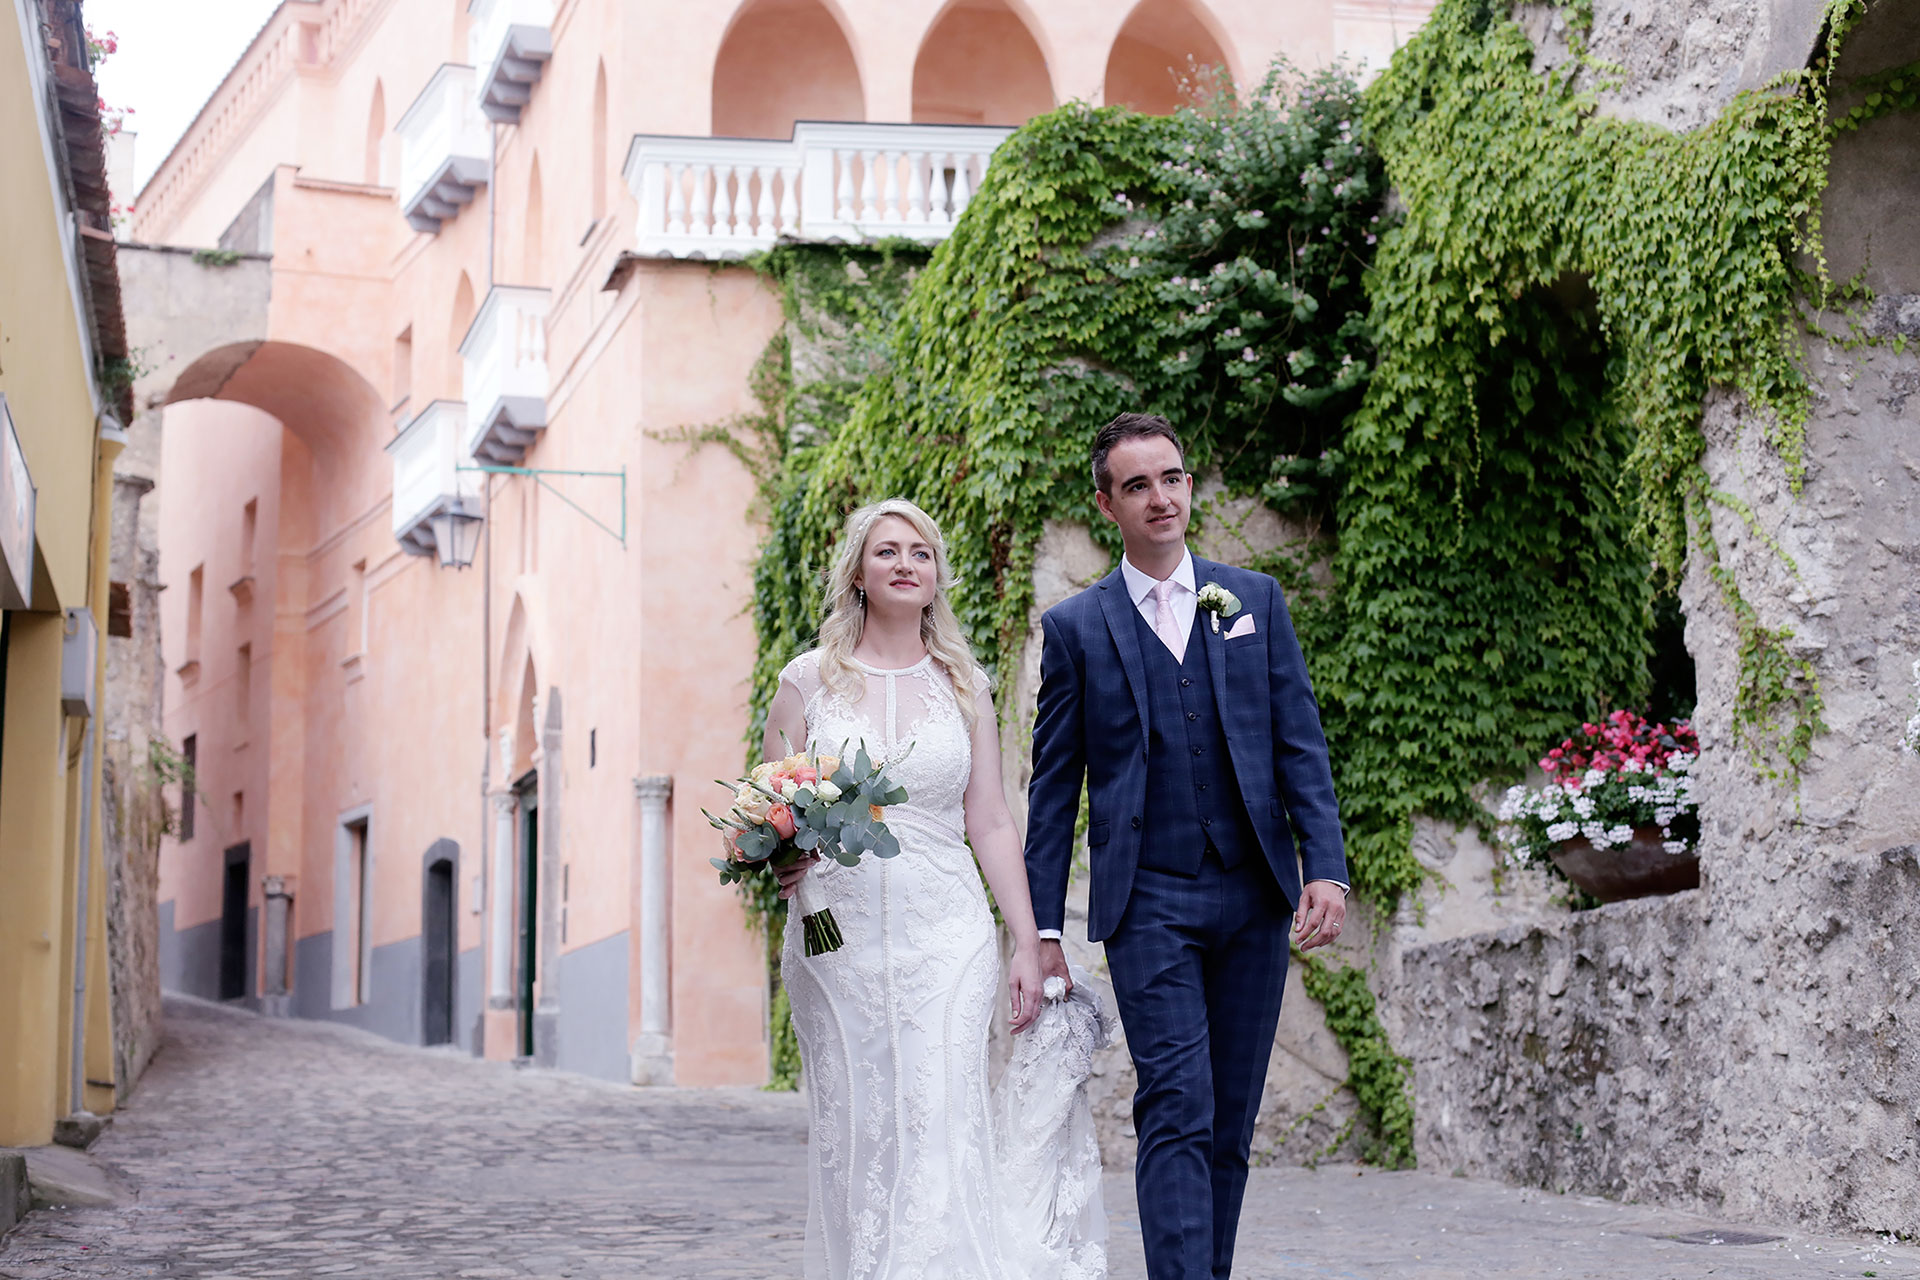 Luxury Destination Civil Wedding Ravello Giardini della Principessa Villa Eva Reception Venues Amalfi Coast Italy Claudia Francese Photography Sisters Planner Photographer